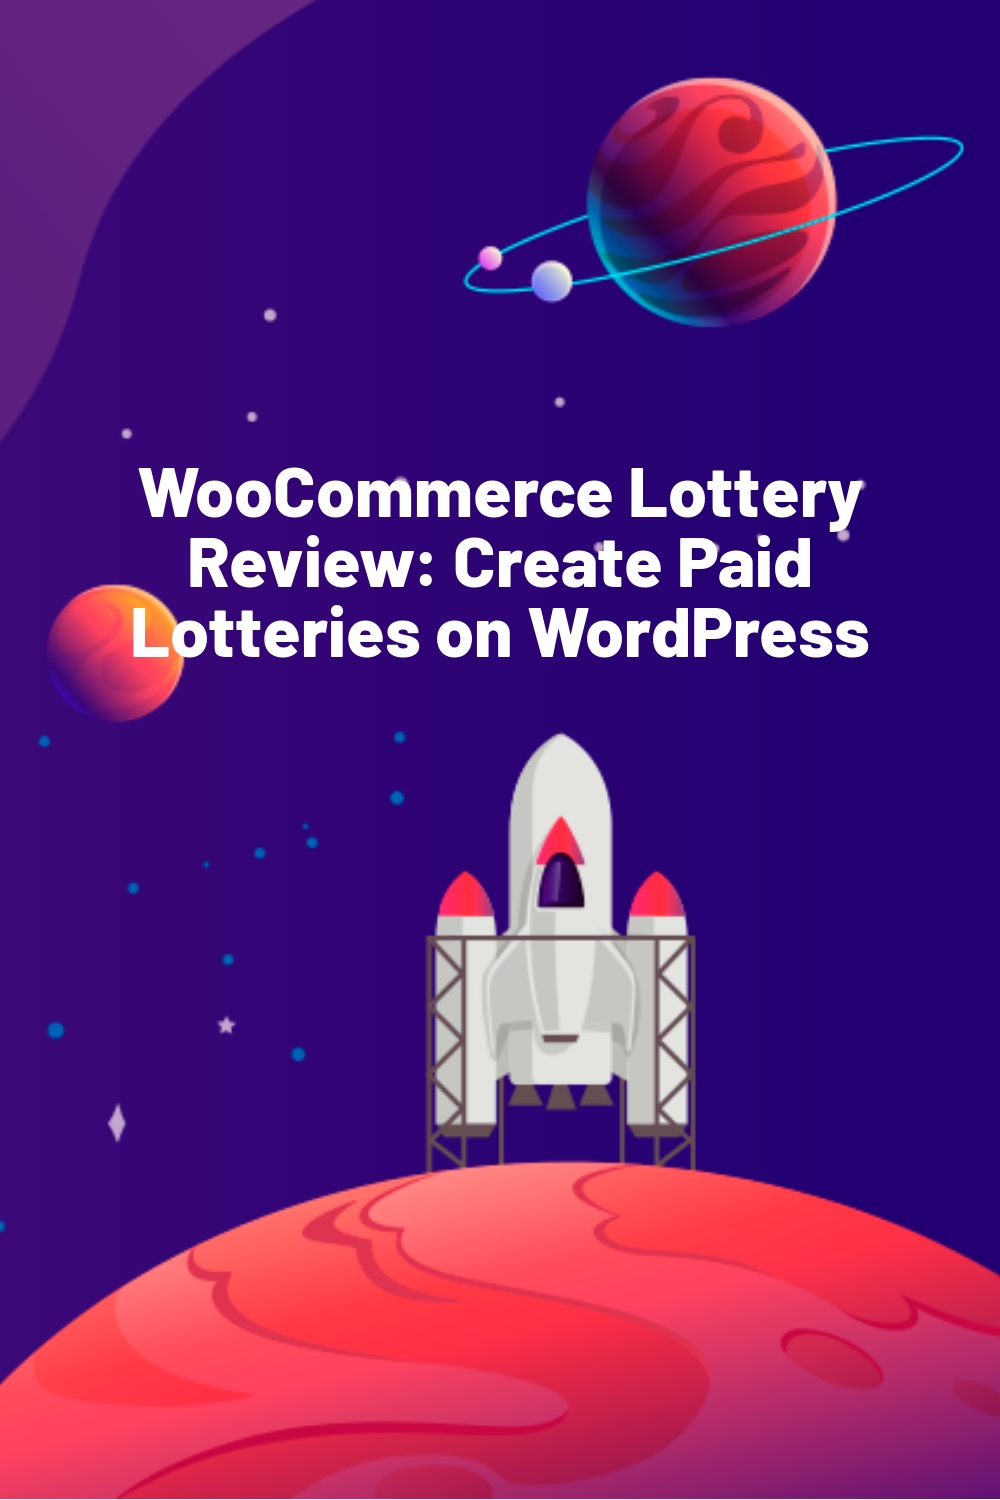 WooCommerce Lottery Review: Create Paid Lotteries on WordPress